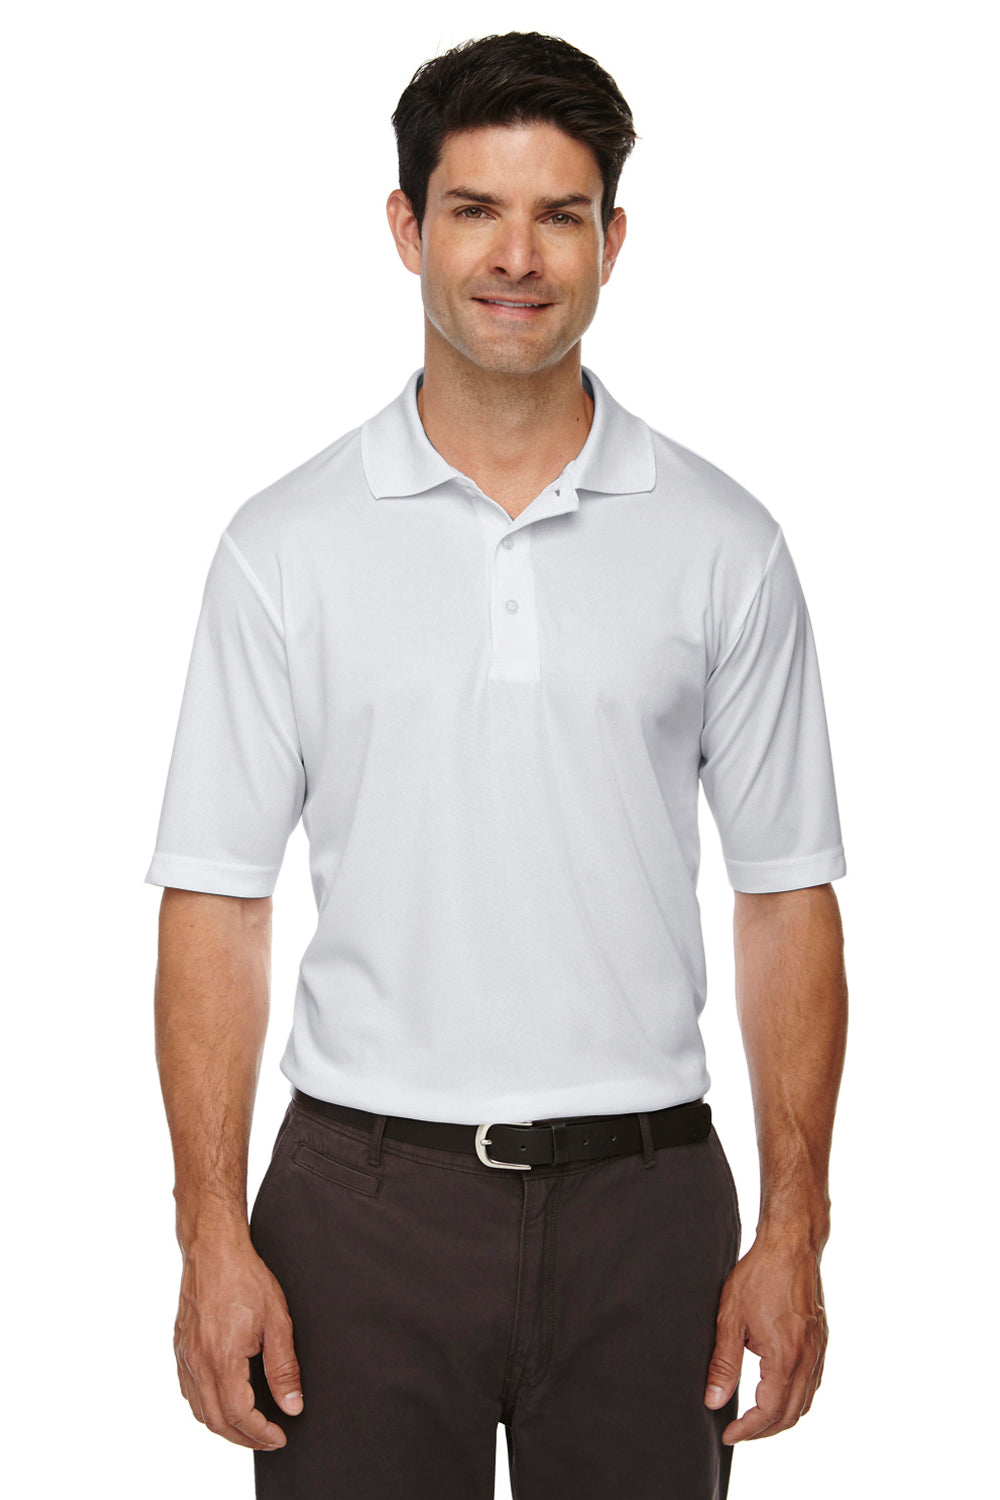 Core 365 88181 Mens Origin Performance Moisture Wicking Short Sleeve Polo Shirt Platinum Grey Front